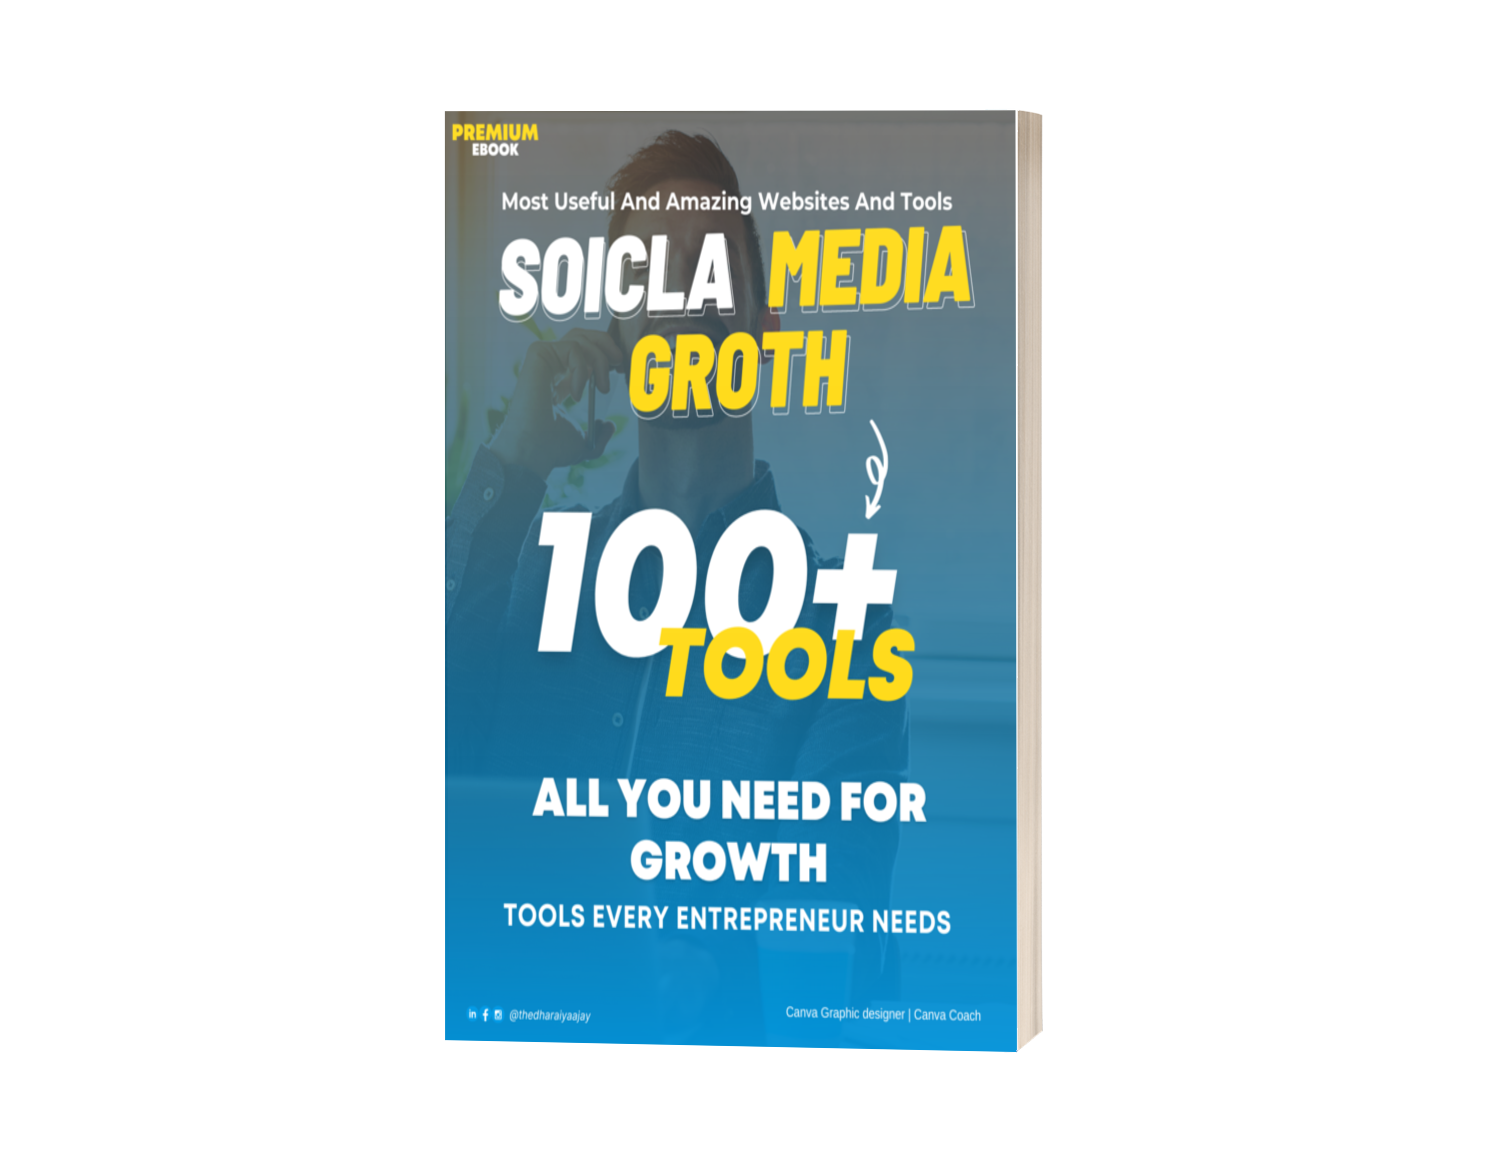 Finding some Tool or website for your social Media Growth .